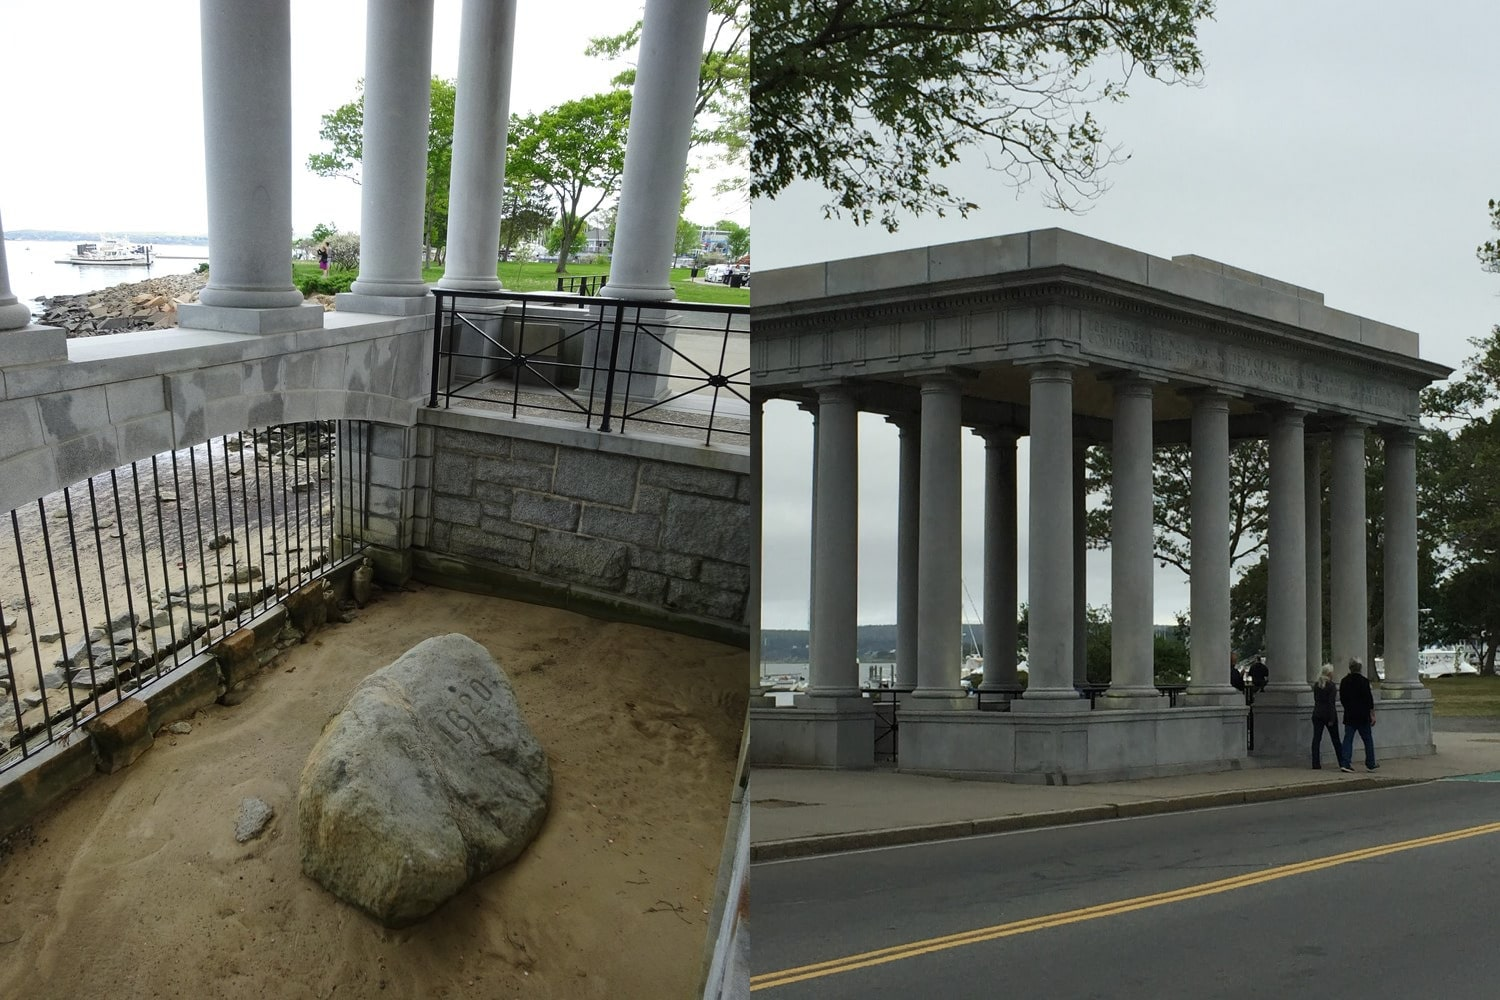 Plymouth Rock, Plymouth, Massachusetts USA10